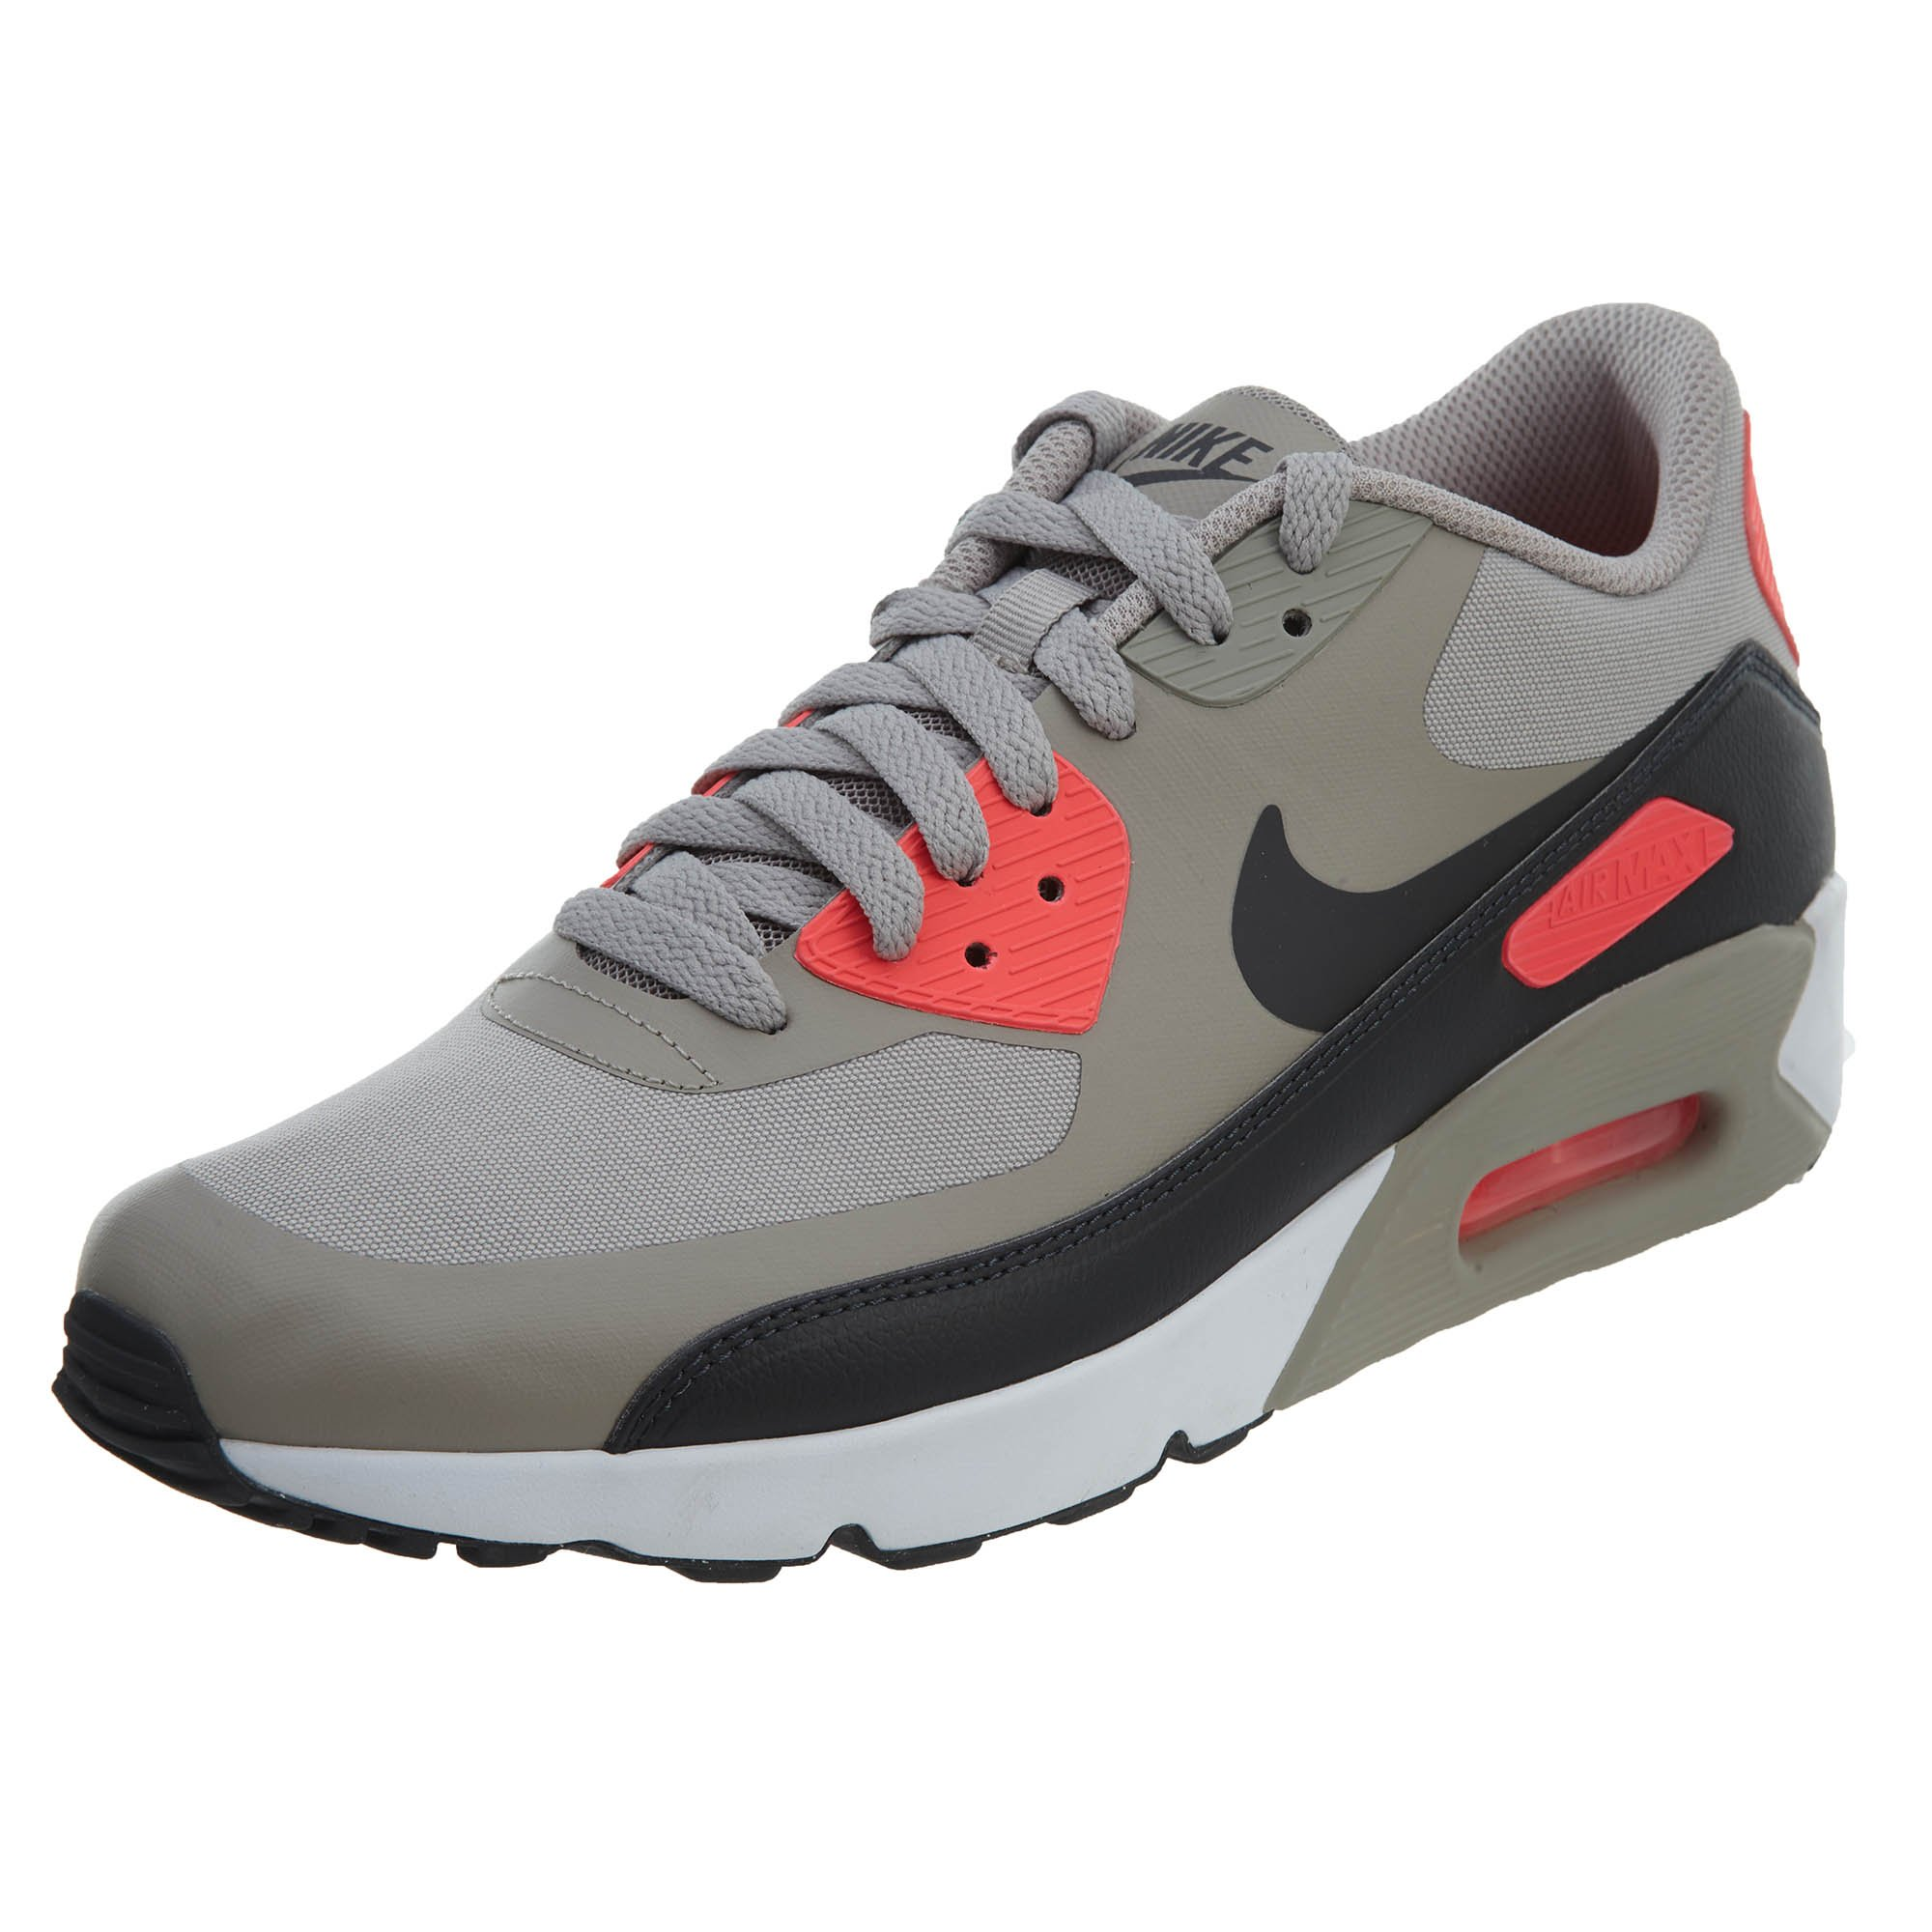 best service 91823 f3371 Galleon - NIKE Air Max 90 Ultra 2.0 Essential Mens Style  875695-010 Size   7.5